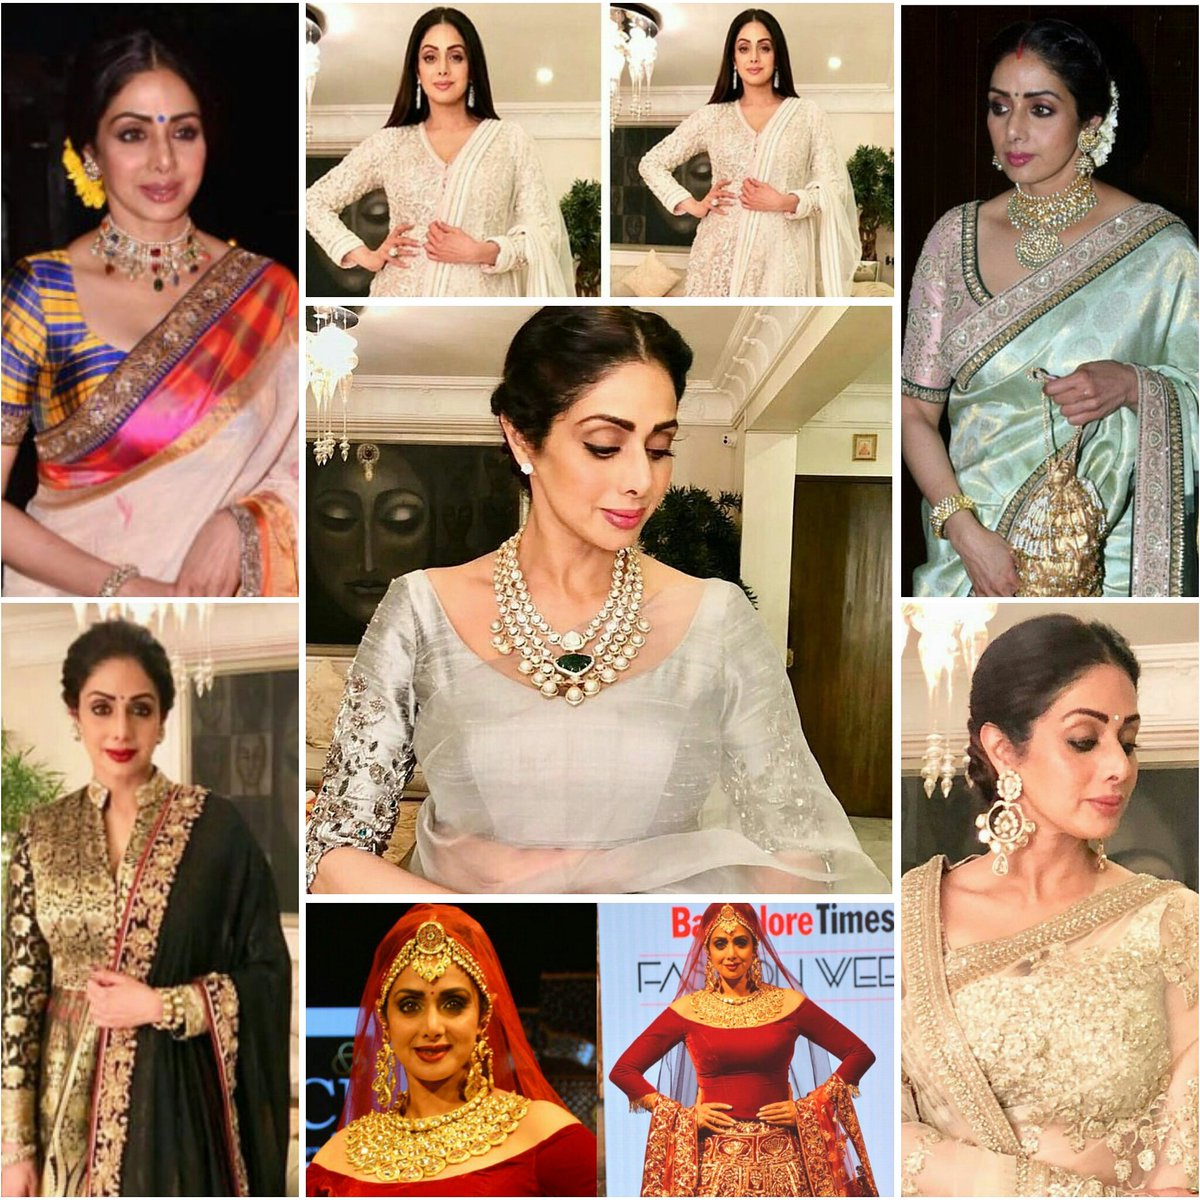 Latest Appearances of Our Goddess @SrideviBKapoor  #Awesome #Looks #sridevi #queen<br>http://pic.twitter.com/FBnC8YFgzA